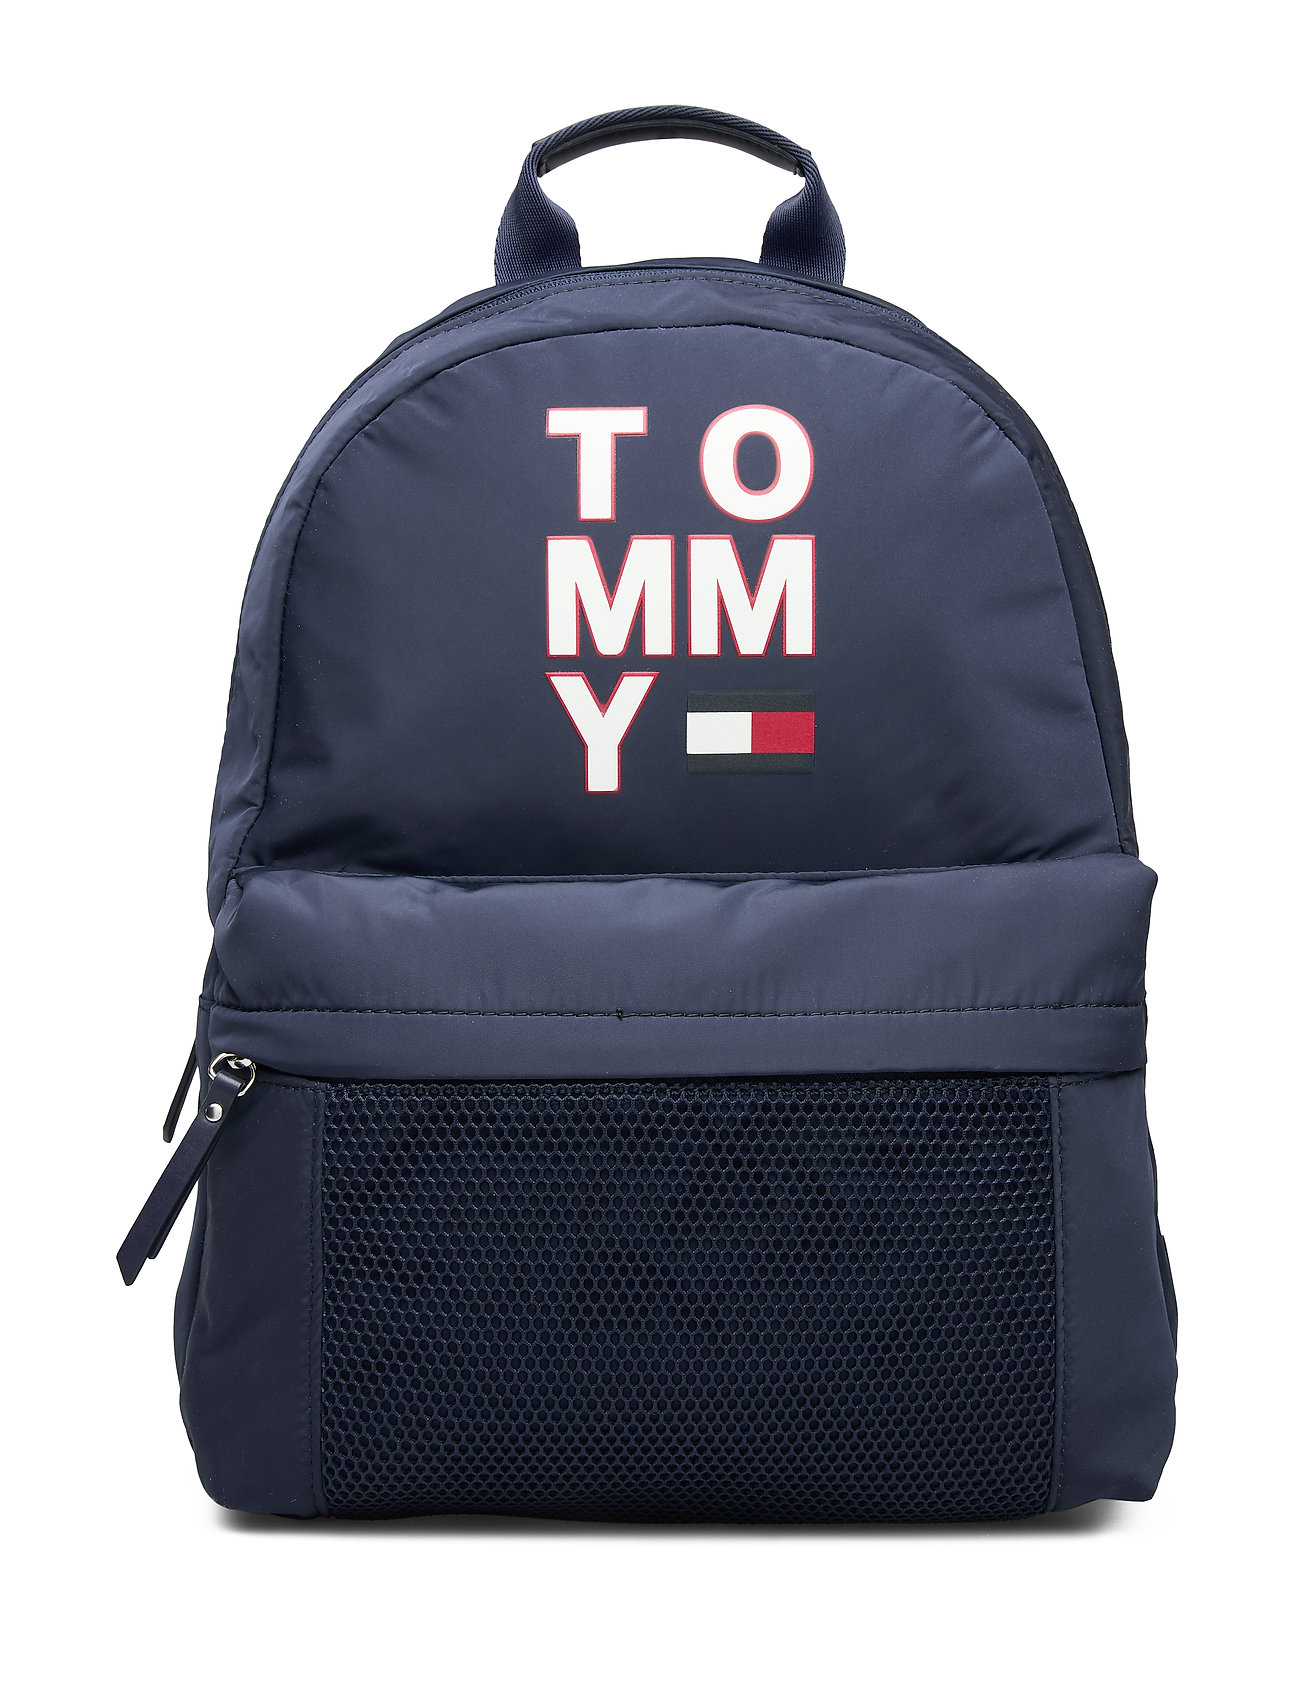 Tommy Hilfiger TH KIDS TOMMY BACKPA - BLACK IRIS